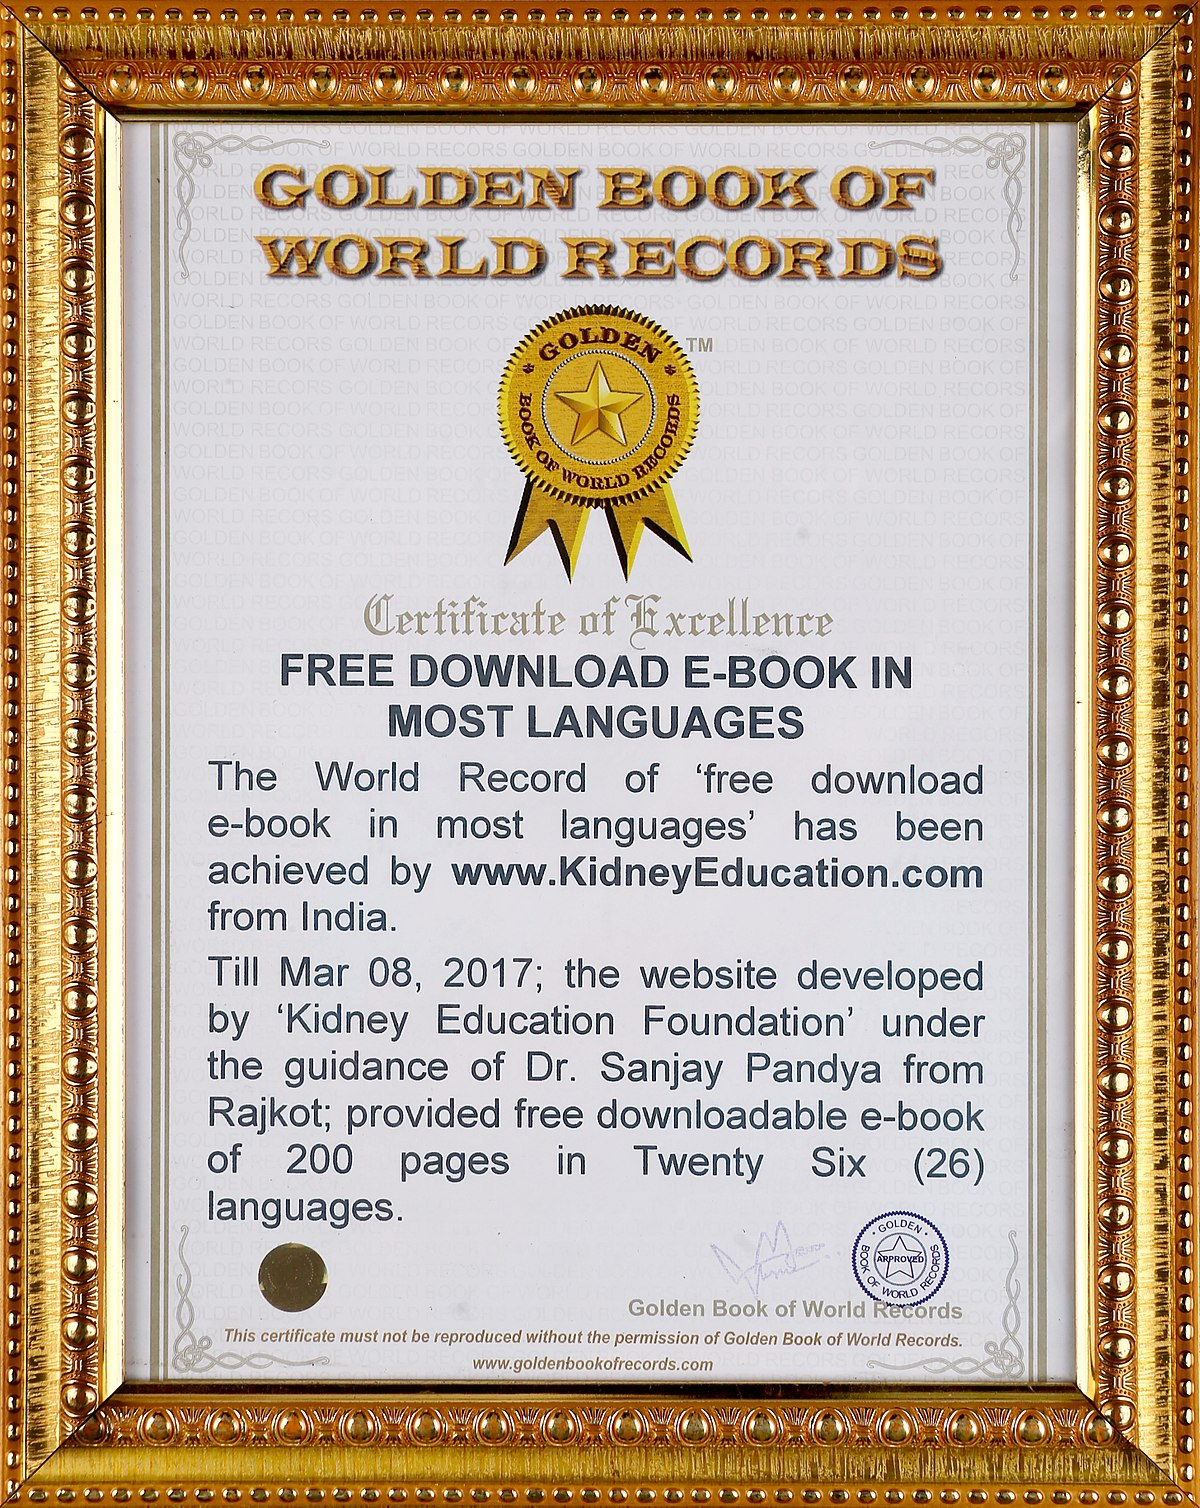 Px Kef Golden Book Of World Records Certificate C March on world health organization